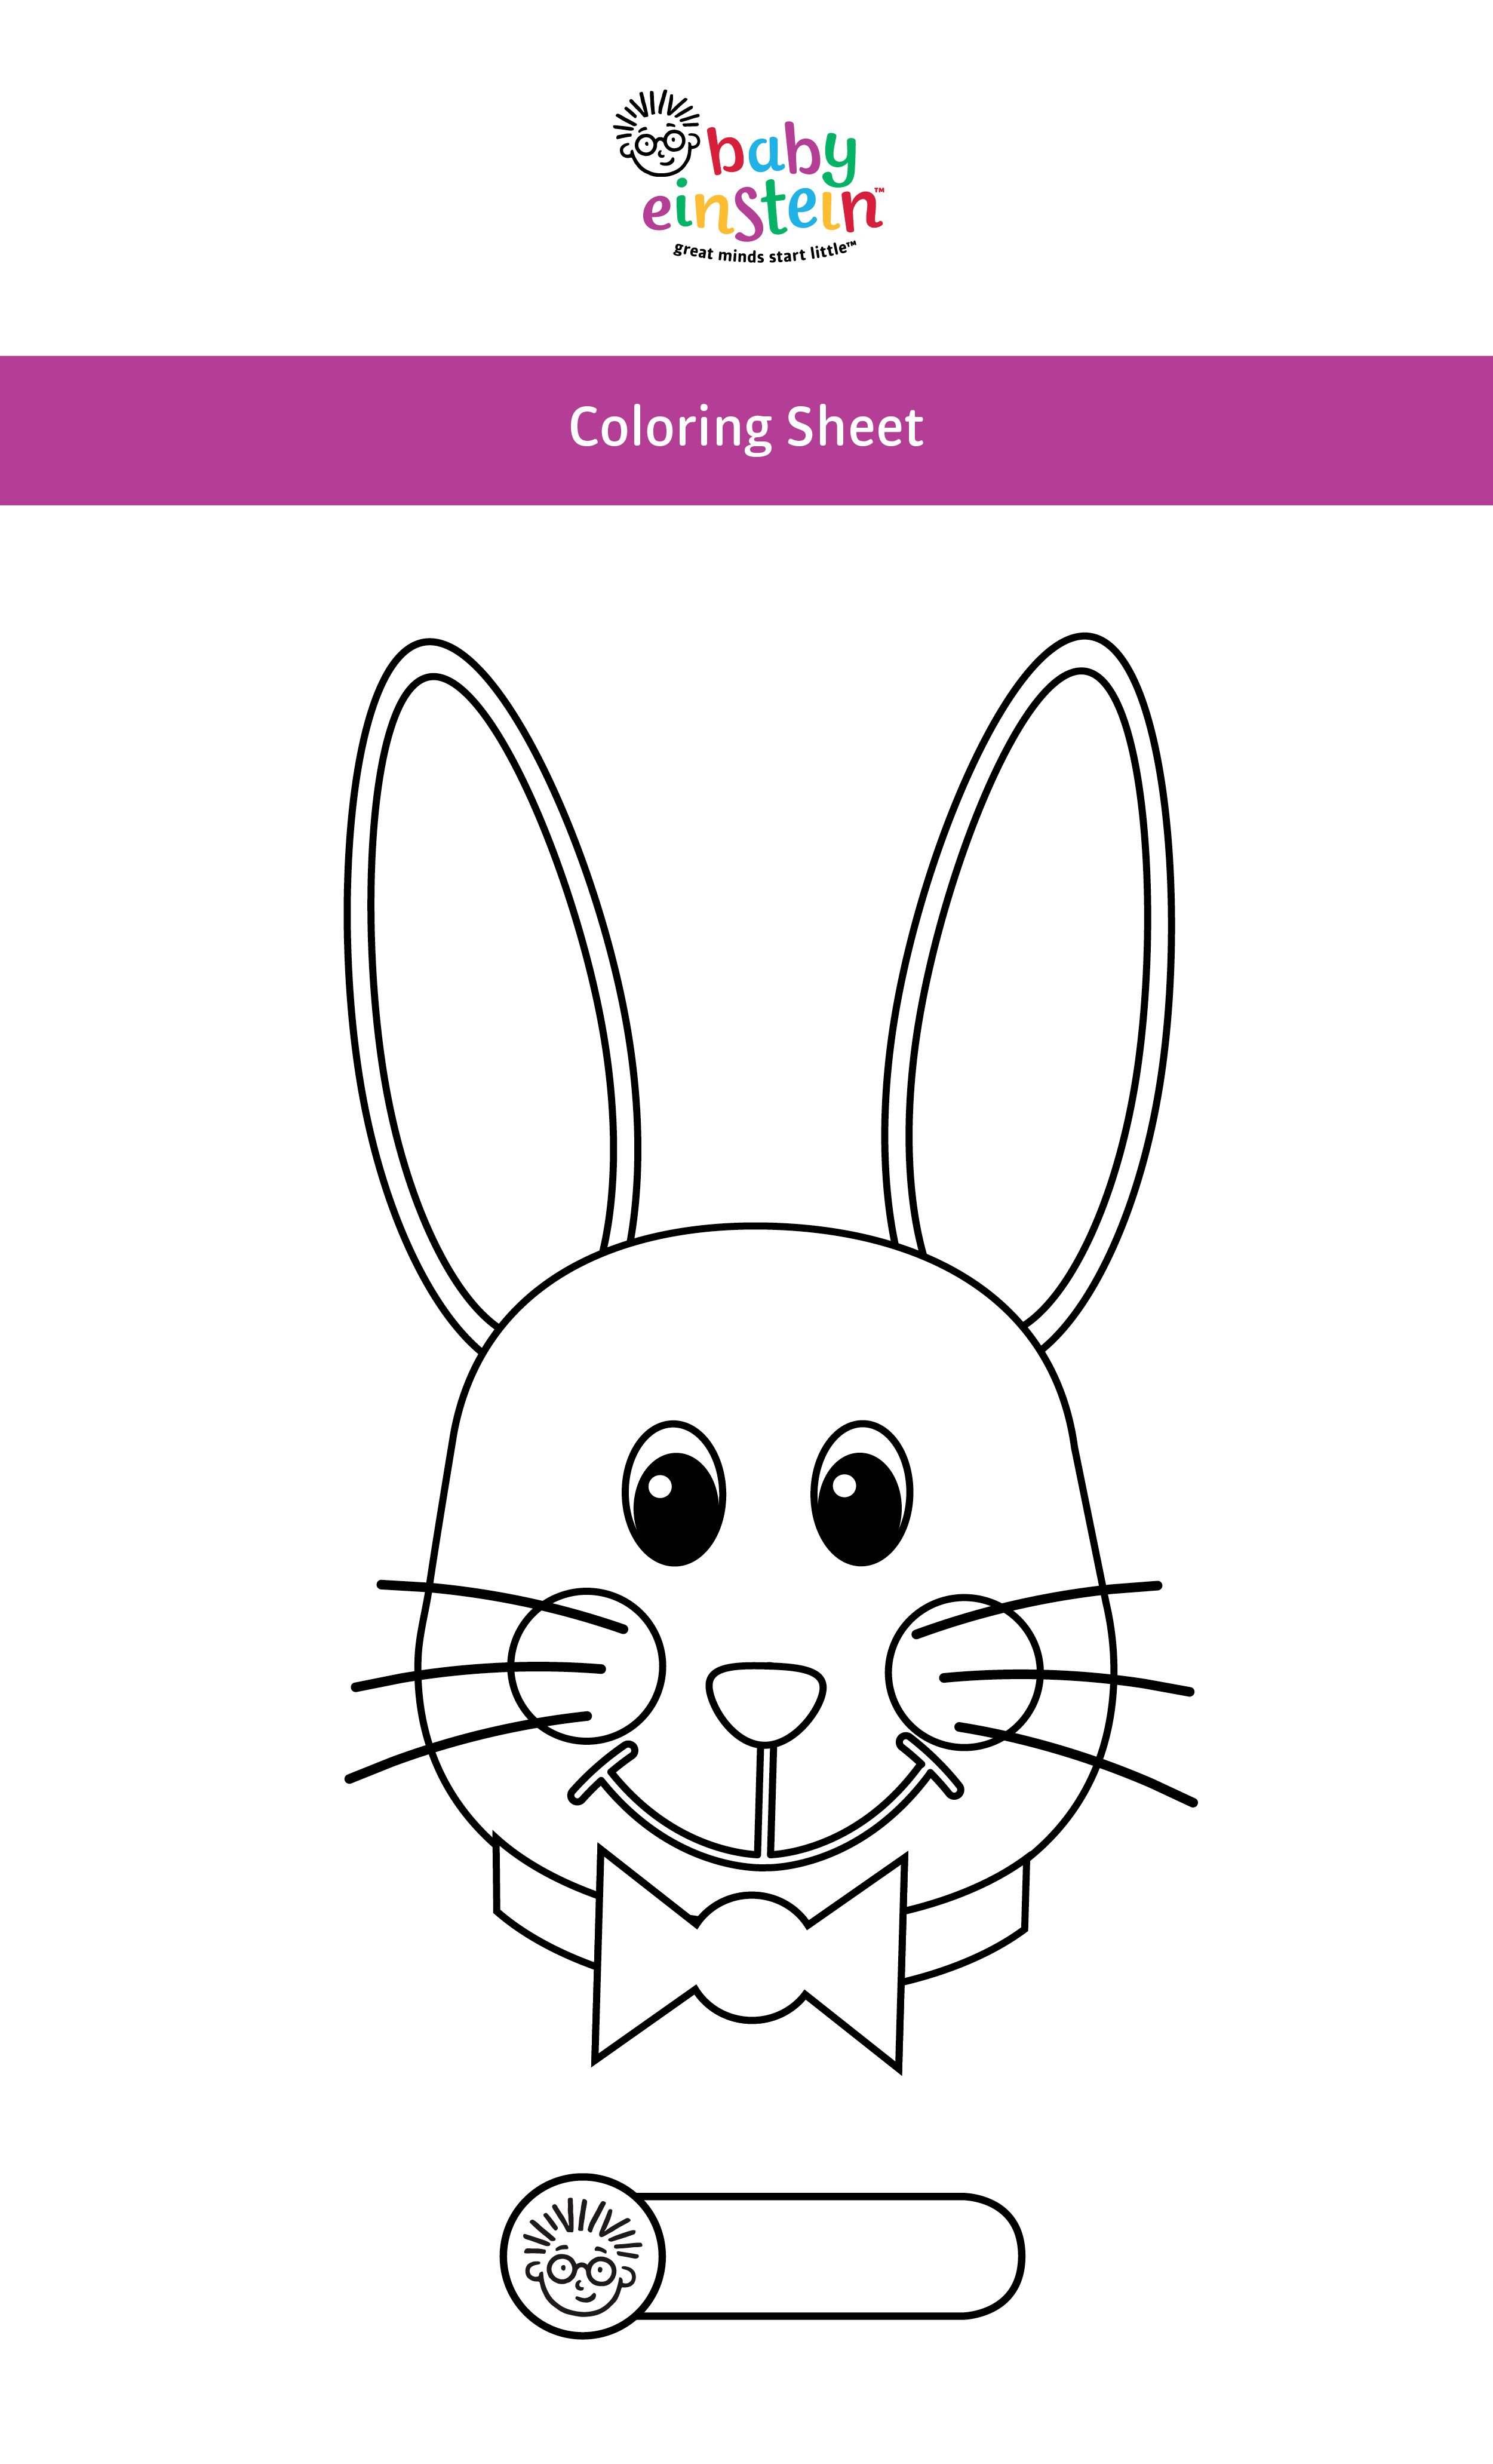 adorable baby einstein coloring pages for your little one